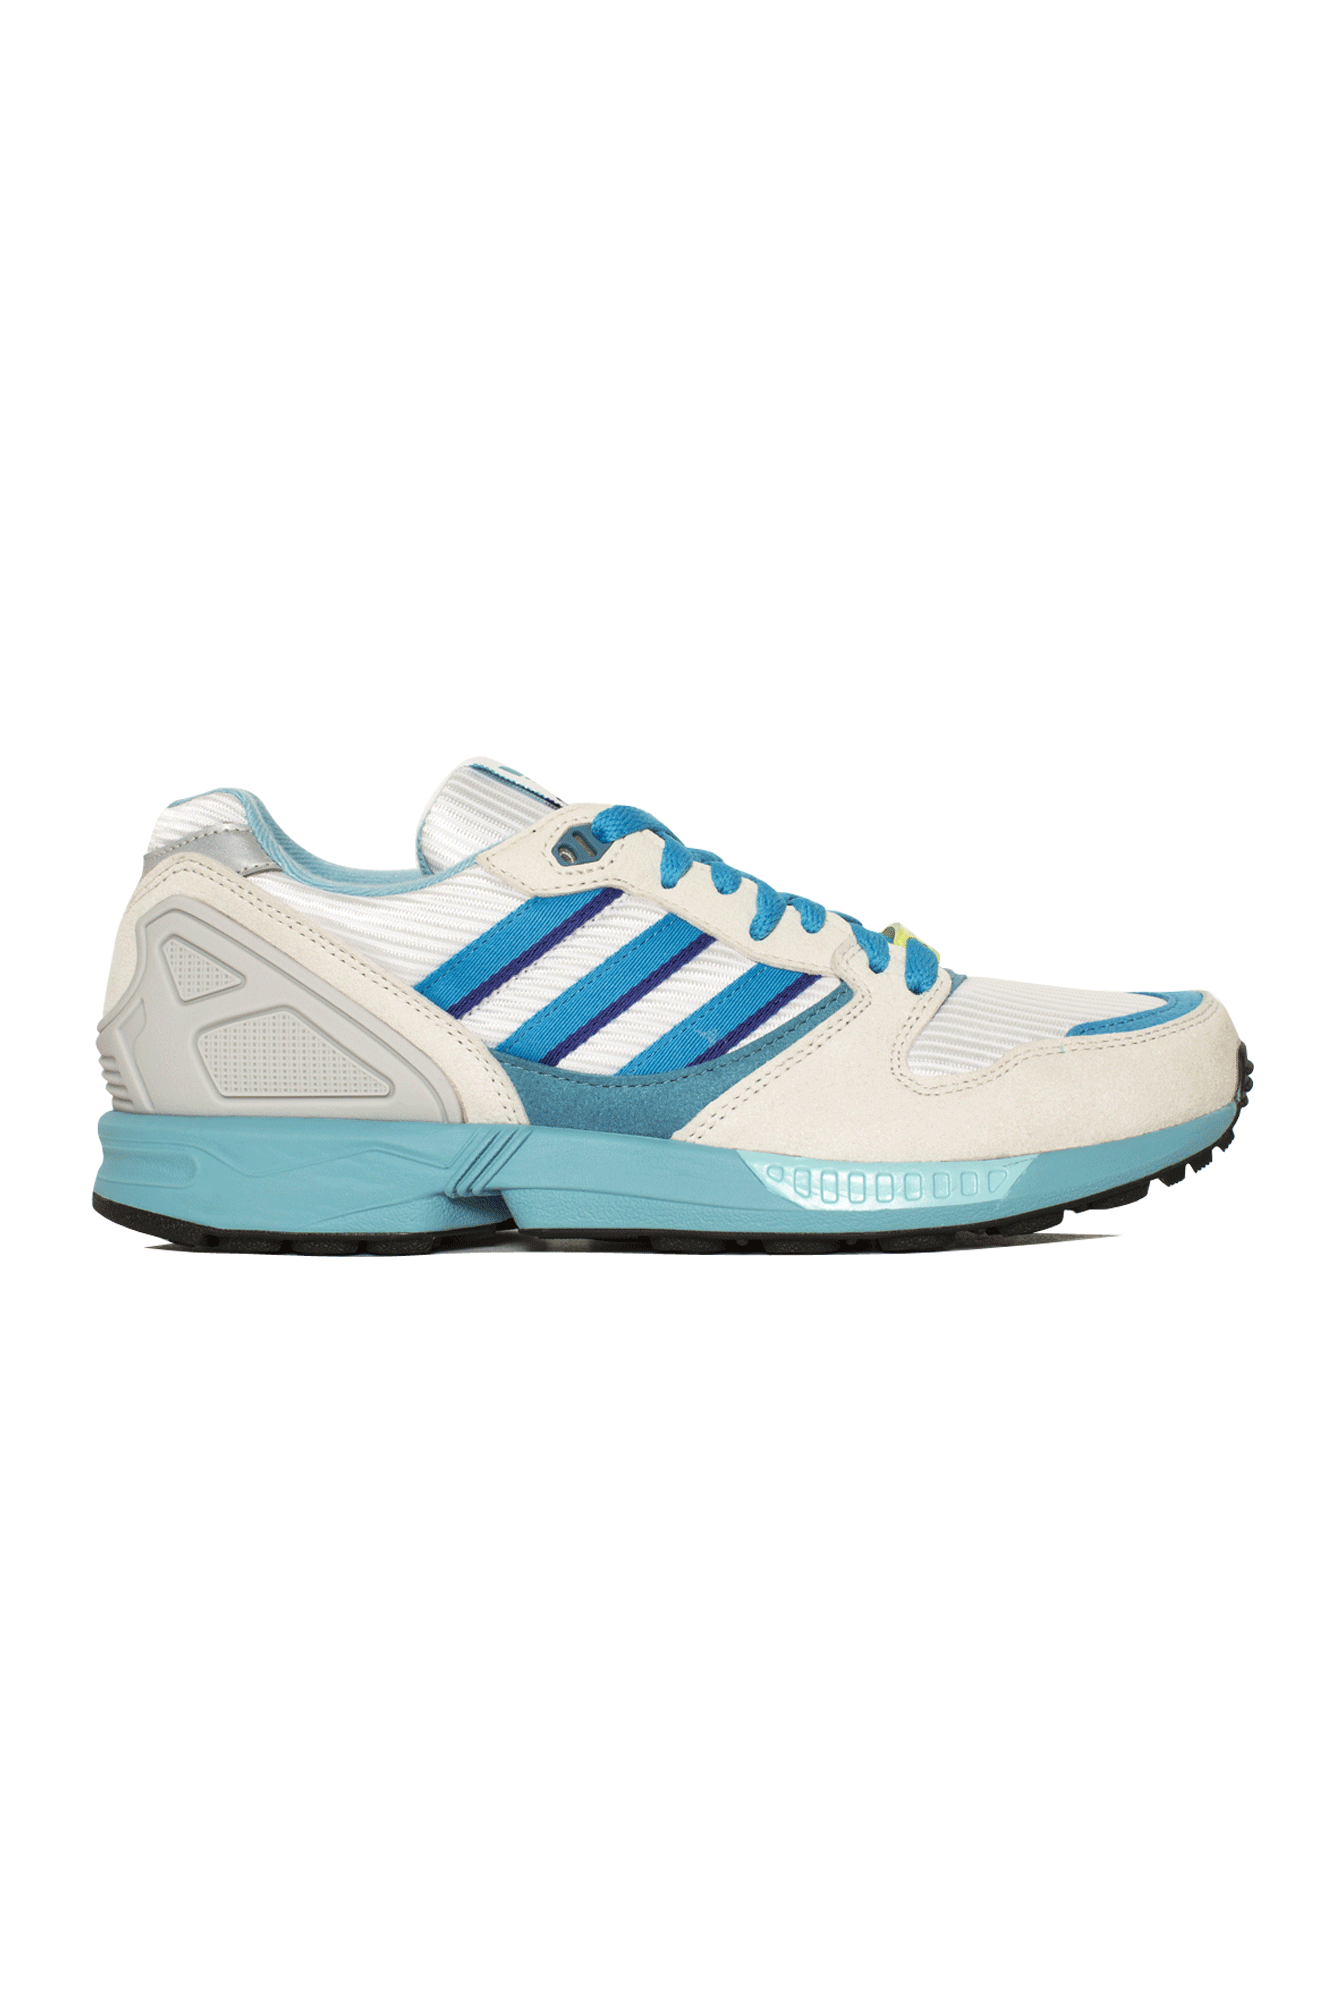 Adidas Originals Sneakers ZX 5000 White FU8406#000#C0006#4,5 - One Block Down